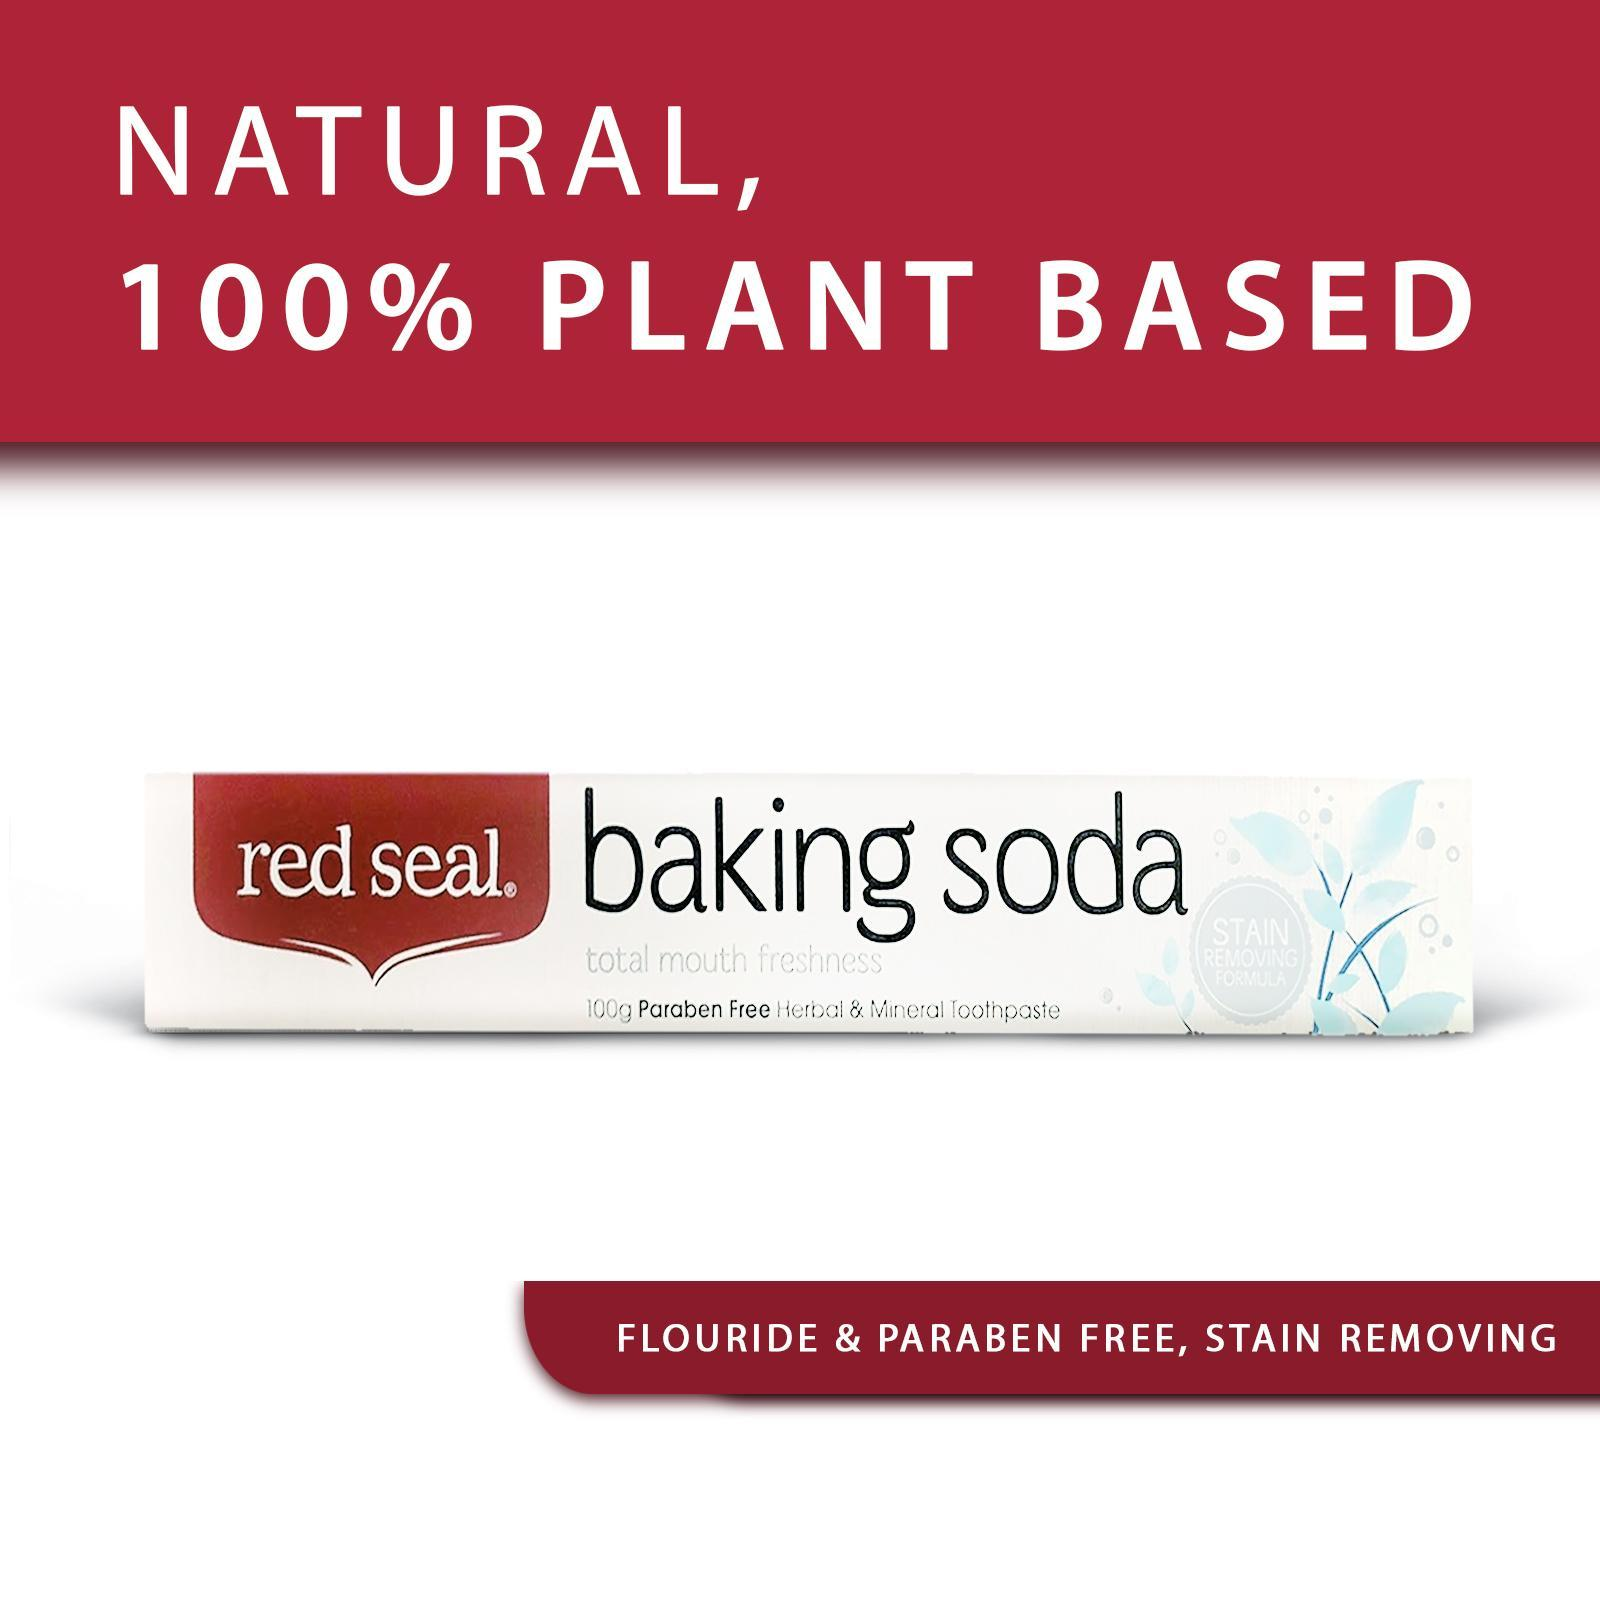 Red Seal Baking Soda Paraben-free Herbal And Mineral Toothpaste - by Optimo Foods